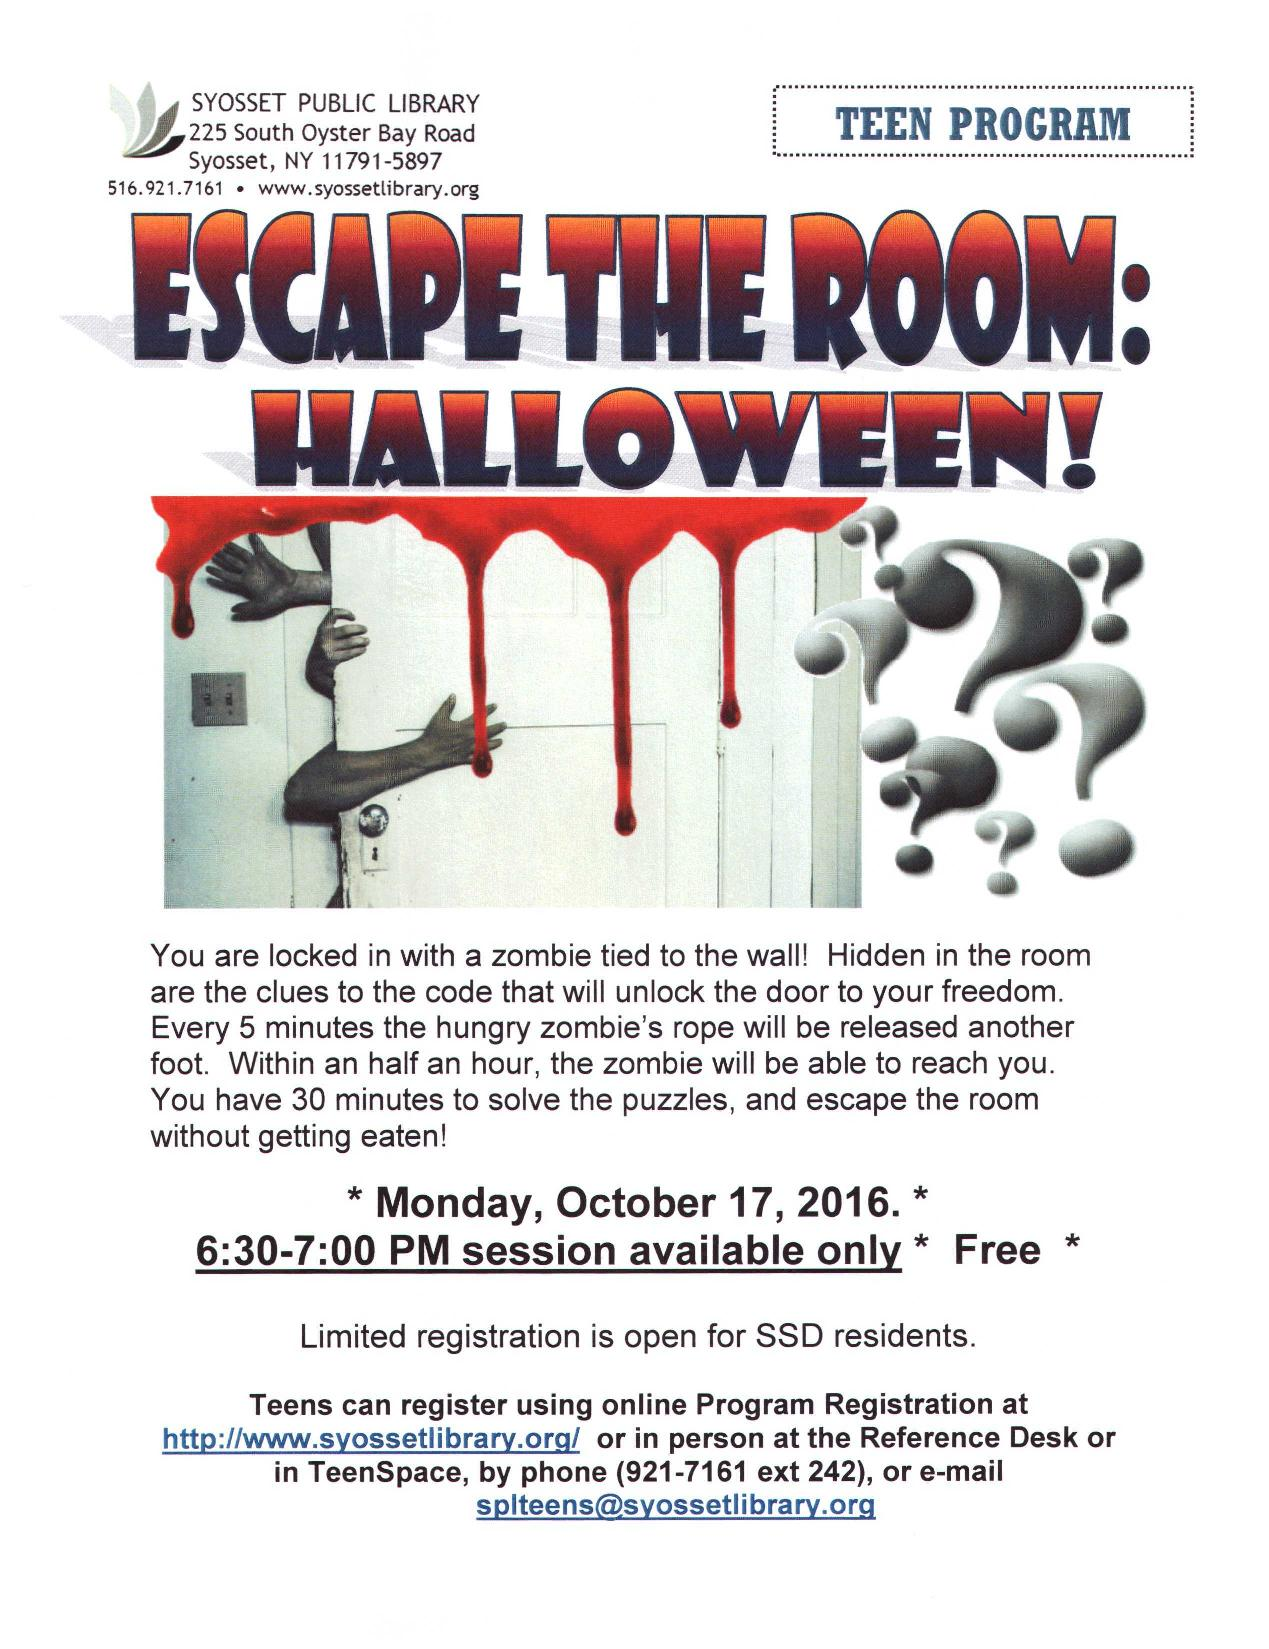 Escape the room 2016 flyer-page-001